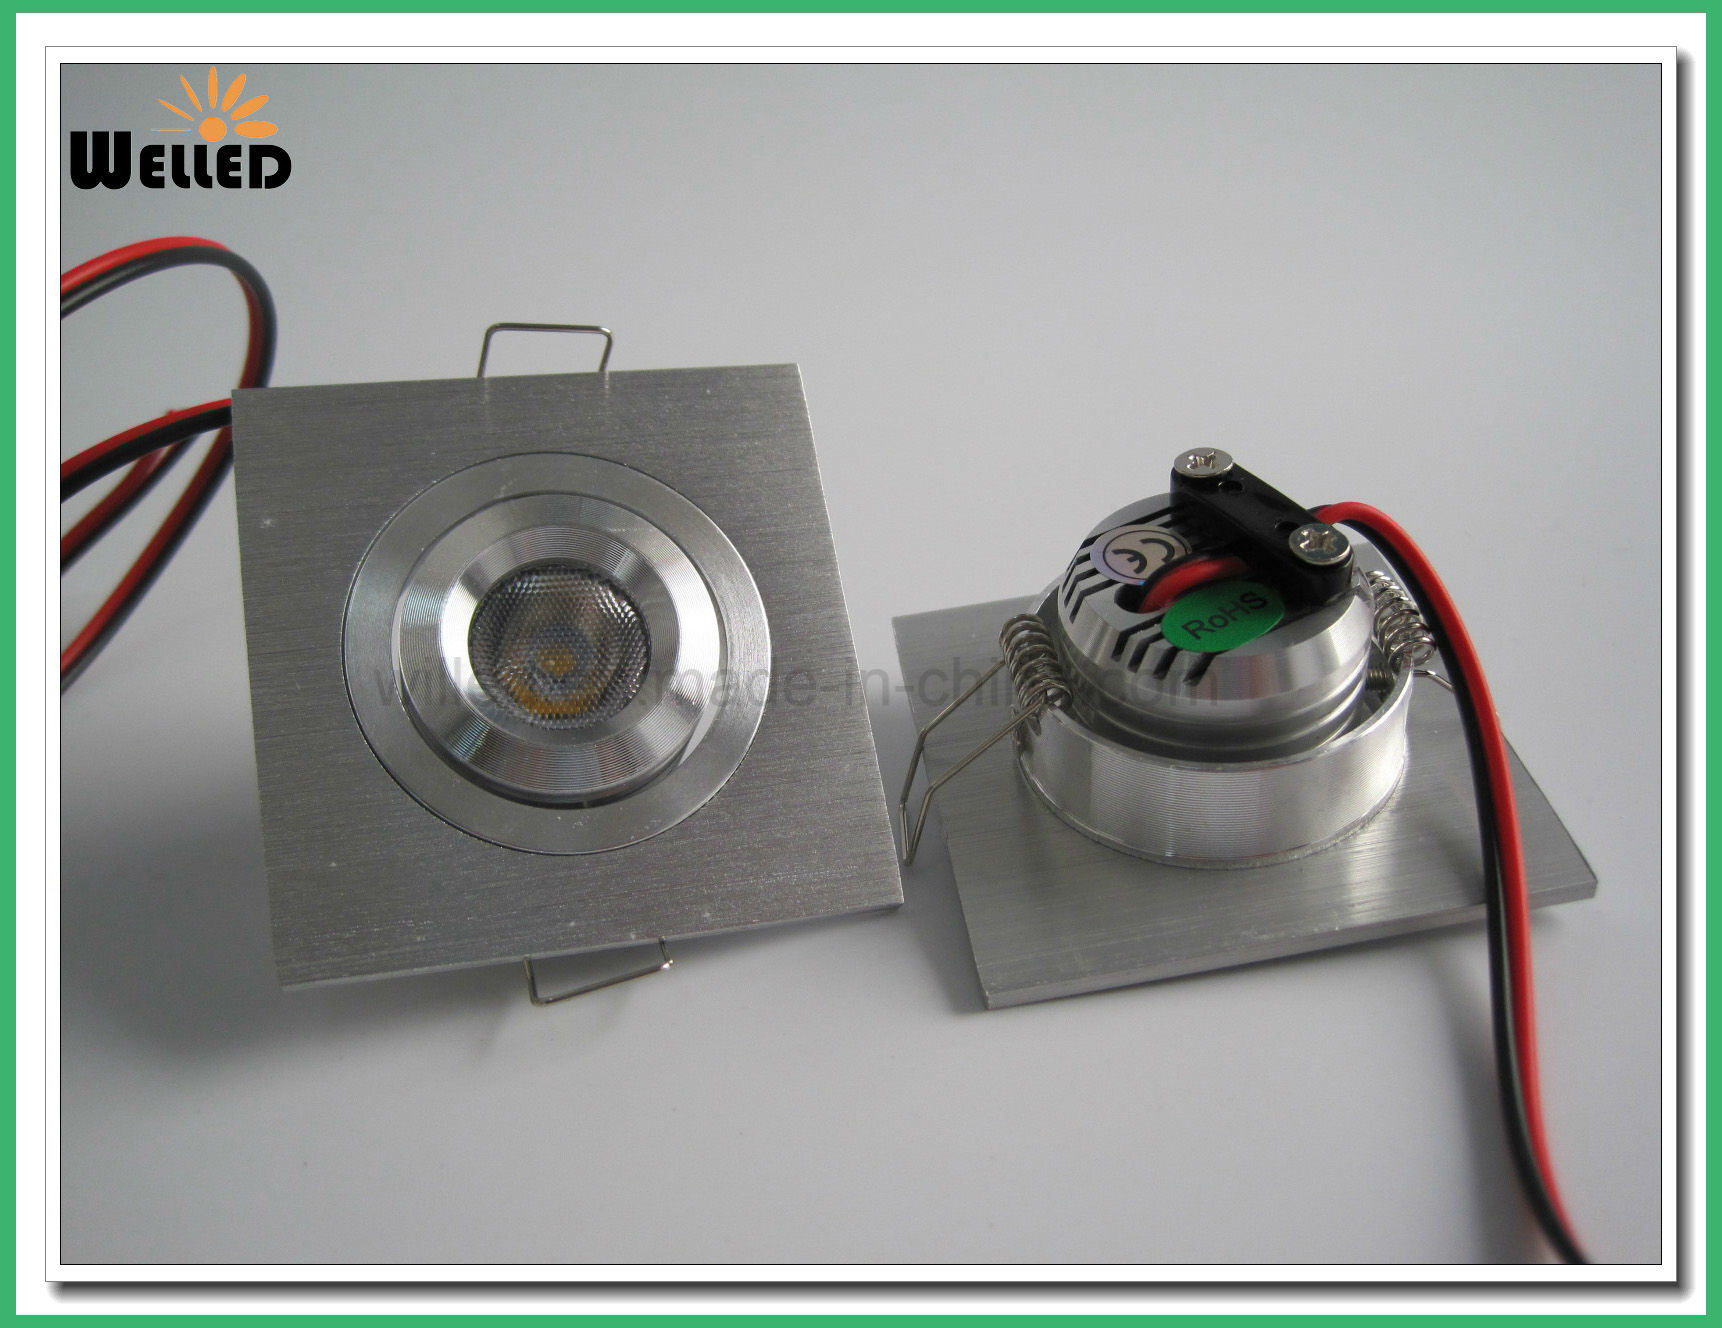 Square Adjustable LED Mini Downlight 3W for Cabinet Lighting